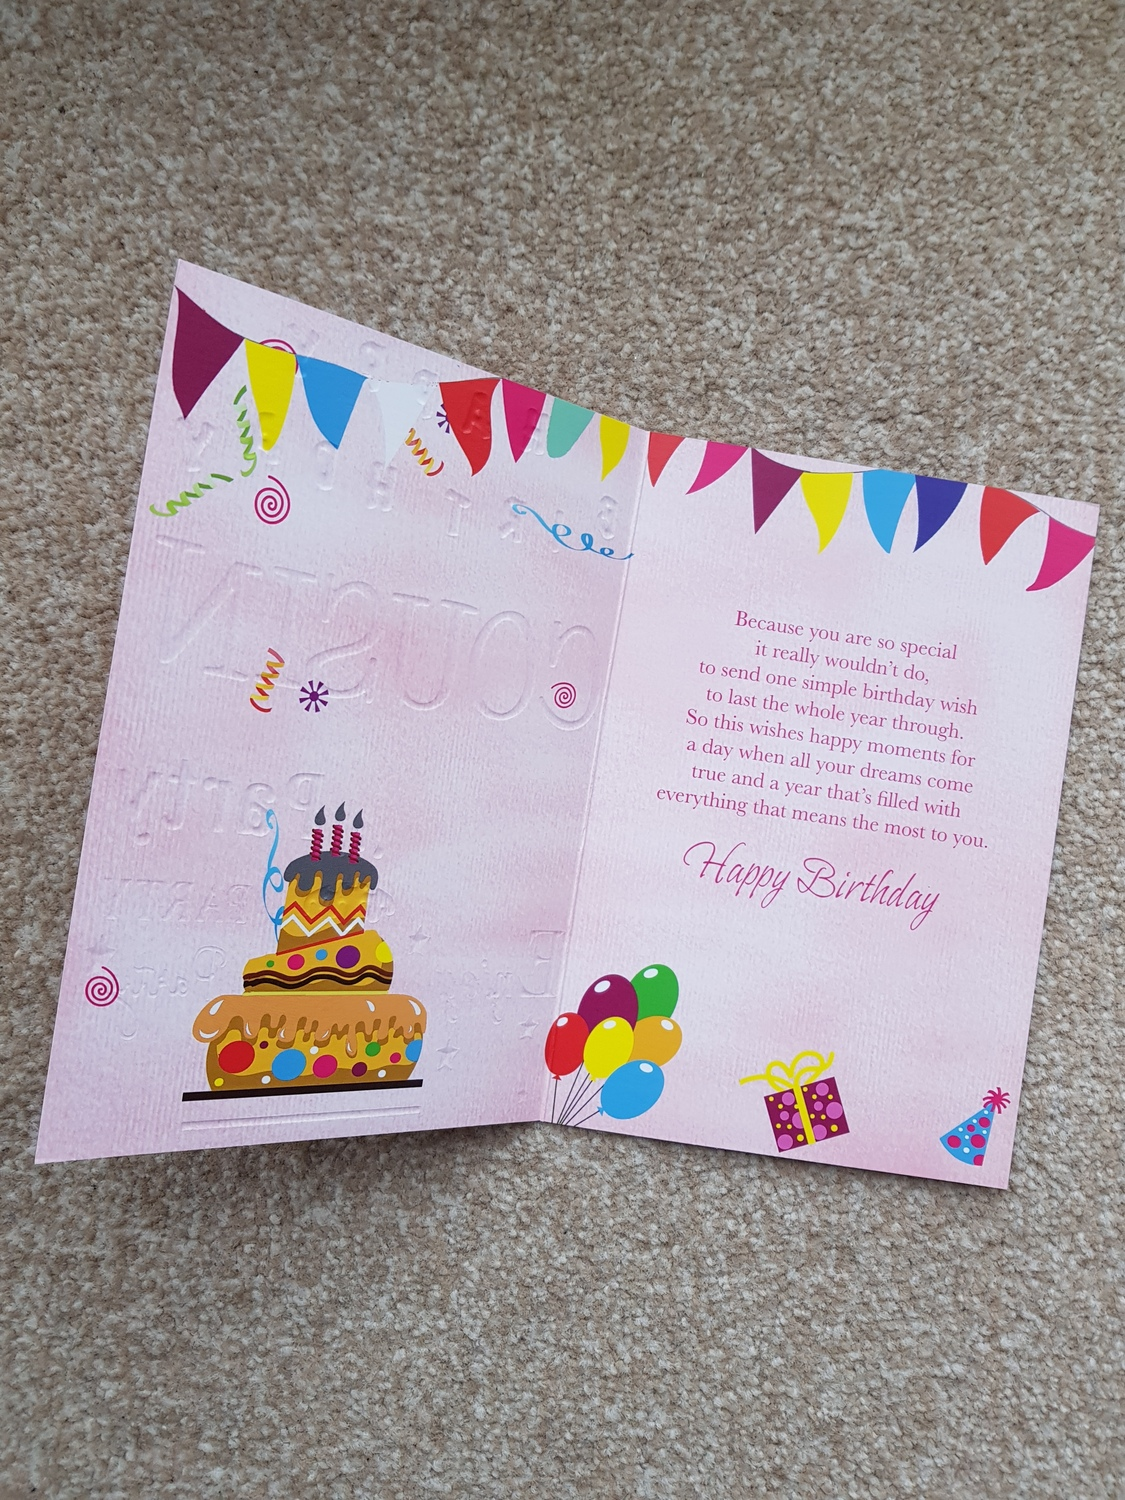 Cousin Cake Bunting Birthday Card